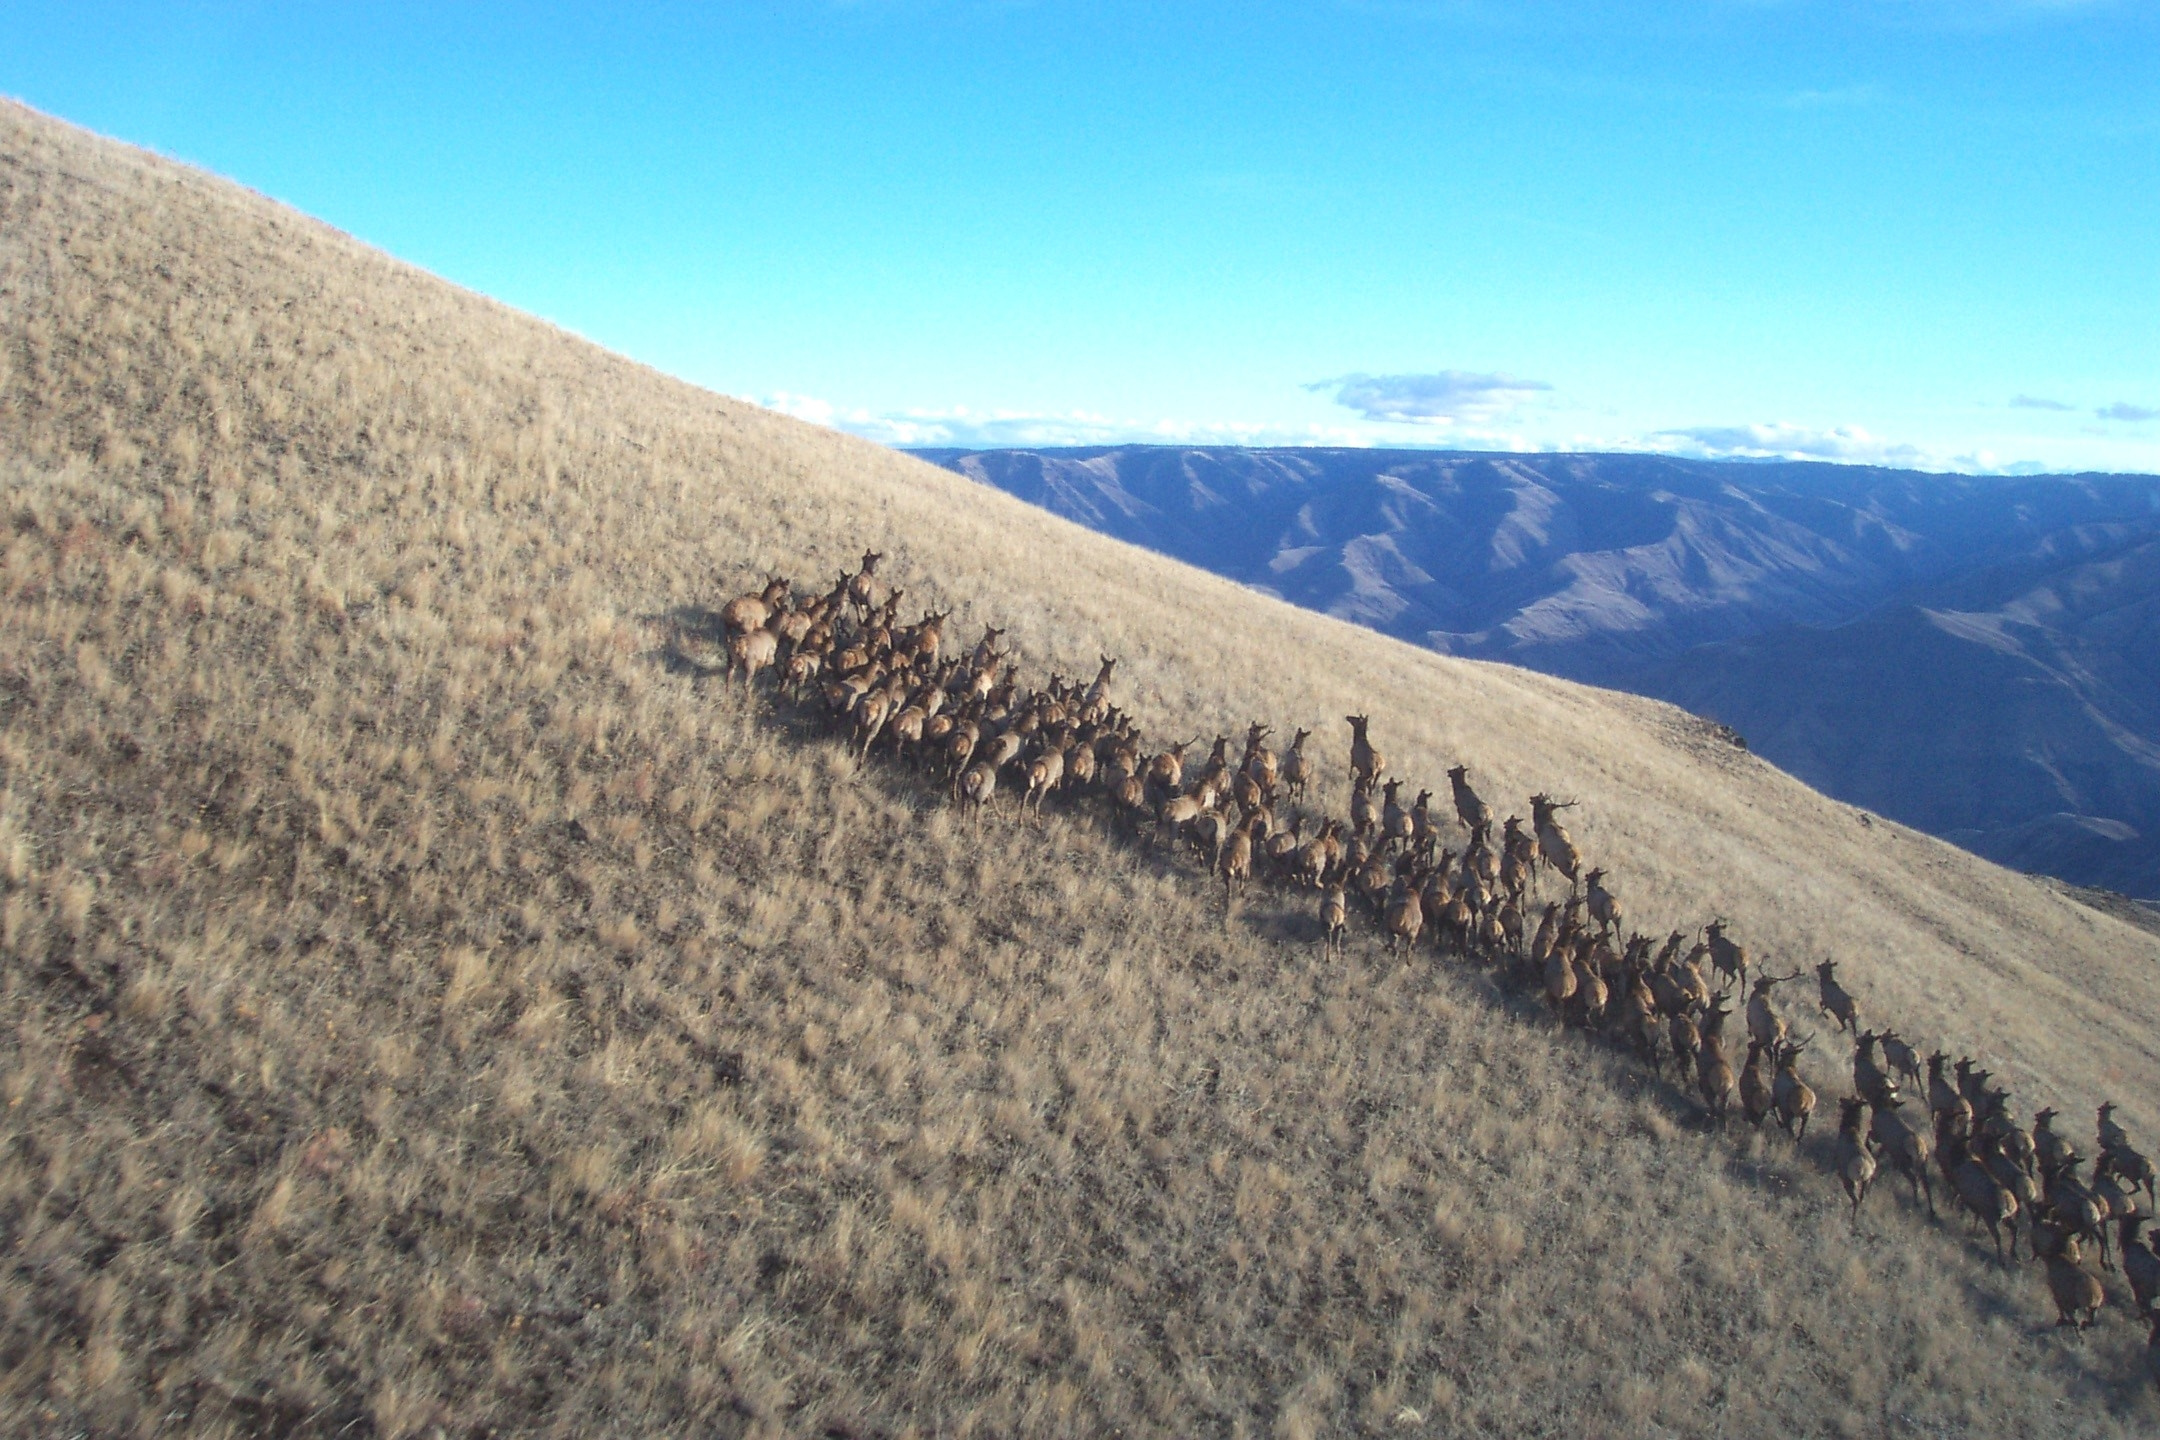 elk herd on a slope in the CMWMA Craig Mountain Wildlife Management Area October 2013 wide aerial shot